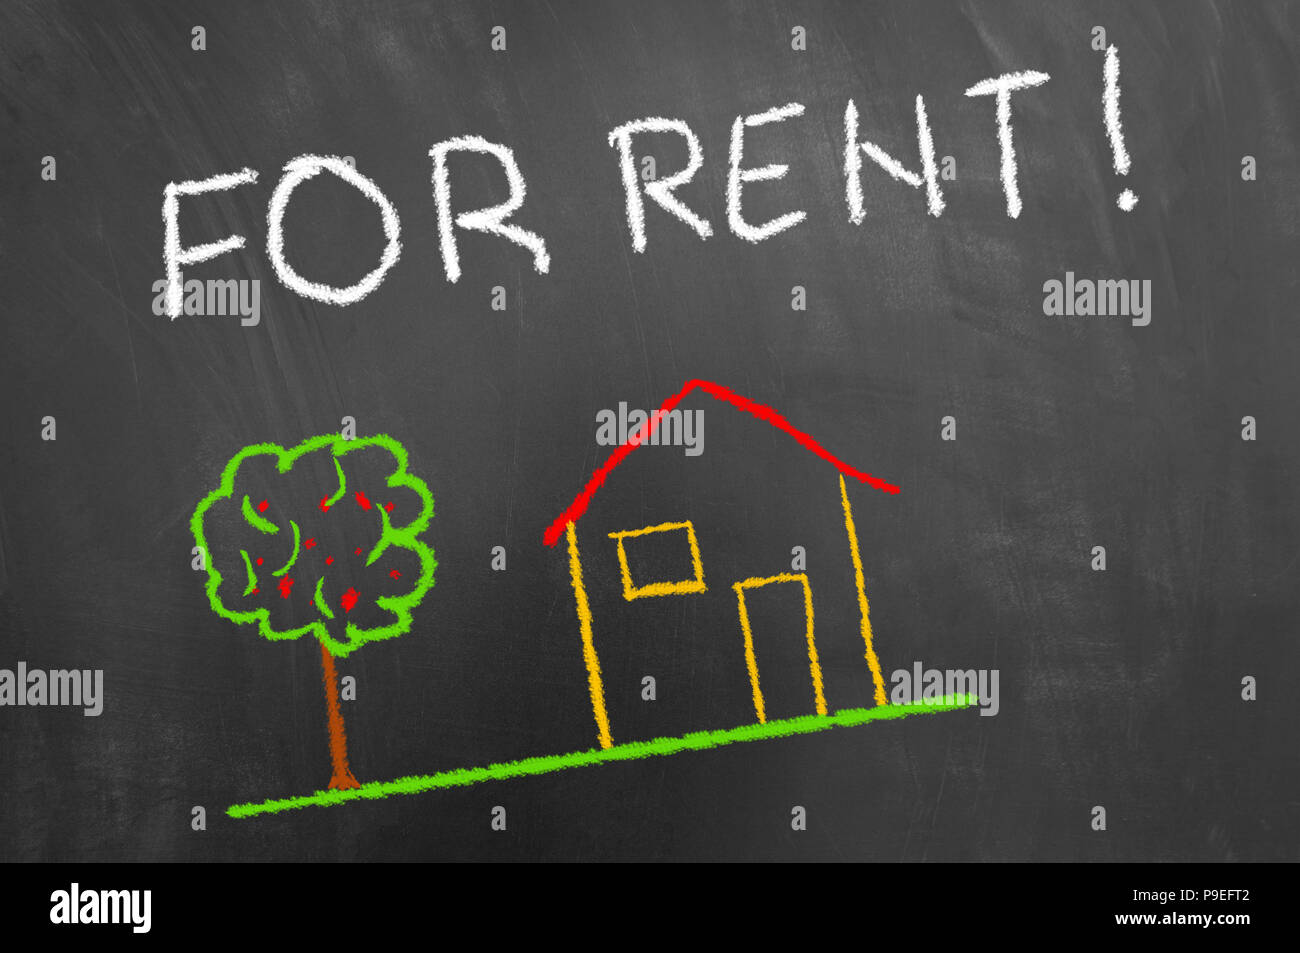 For rent house colorful chalk drawing and hand writing text on blackboard or chalkboard as real estate landlord housing concept - Stock Image